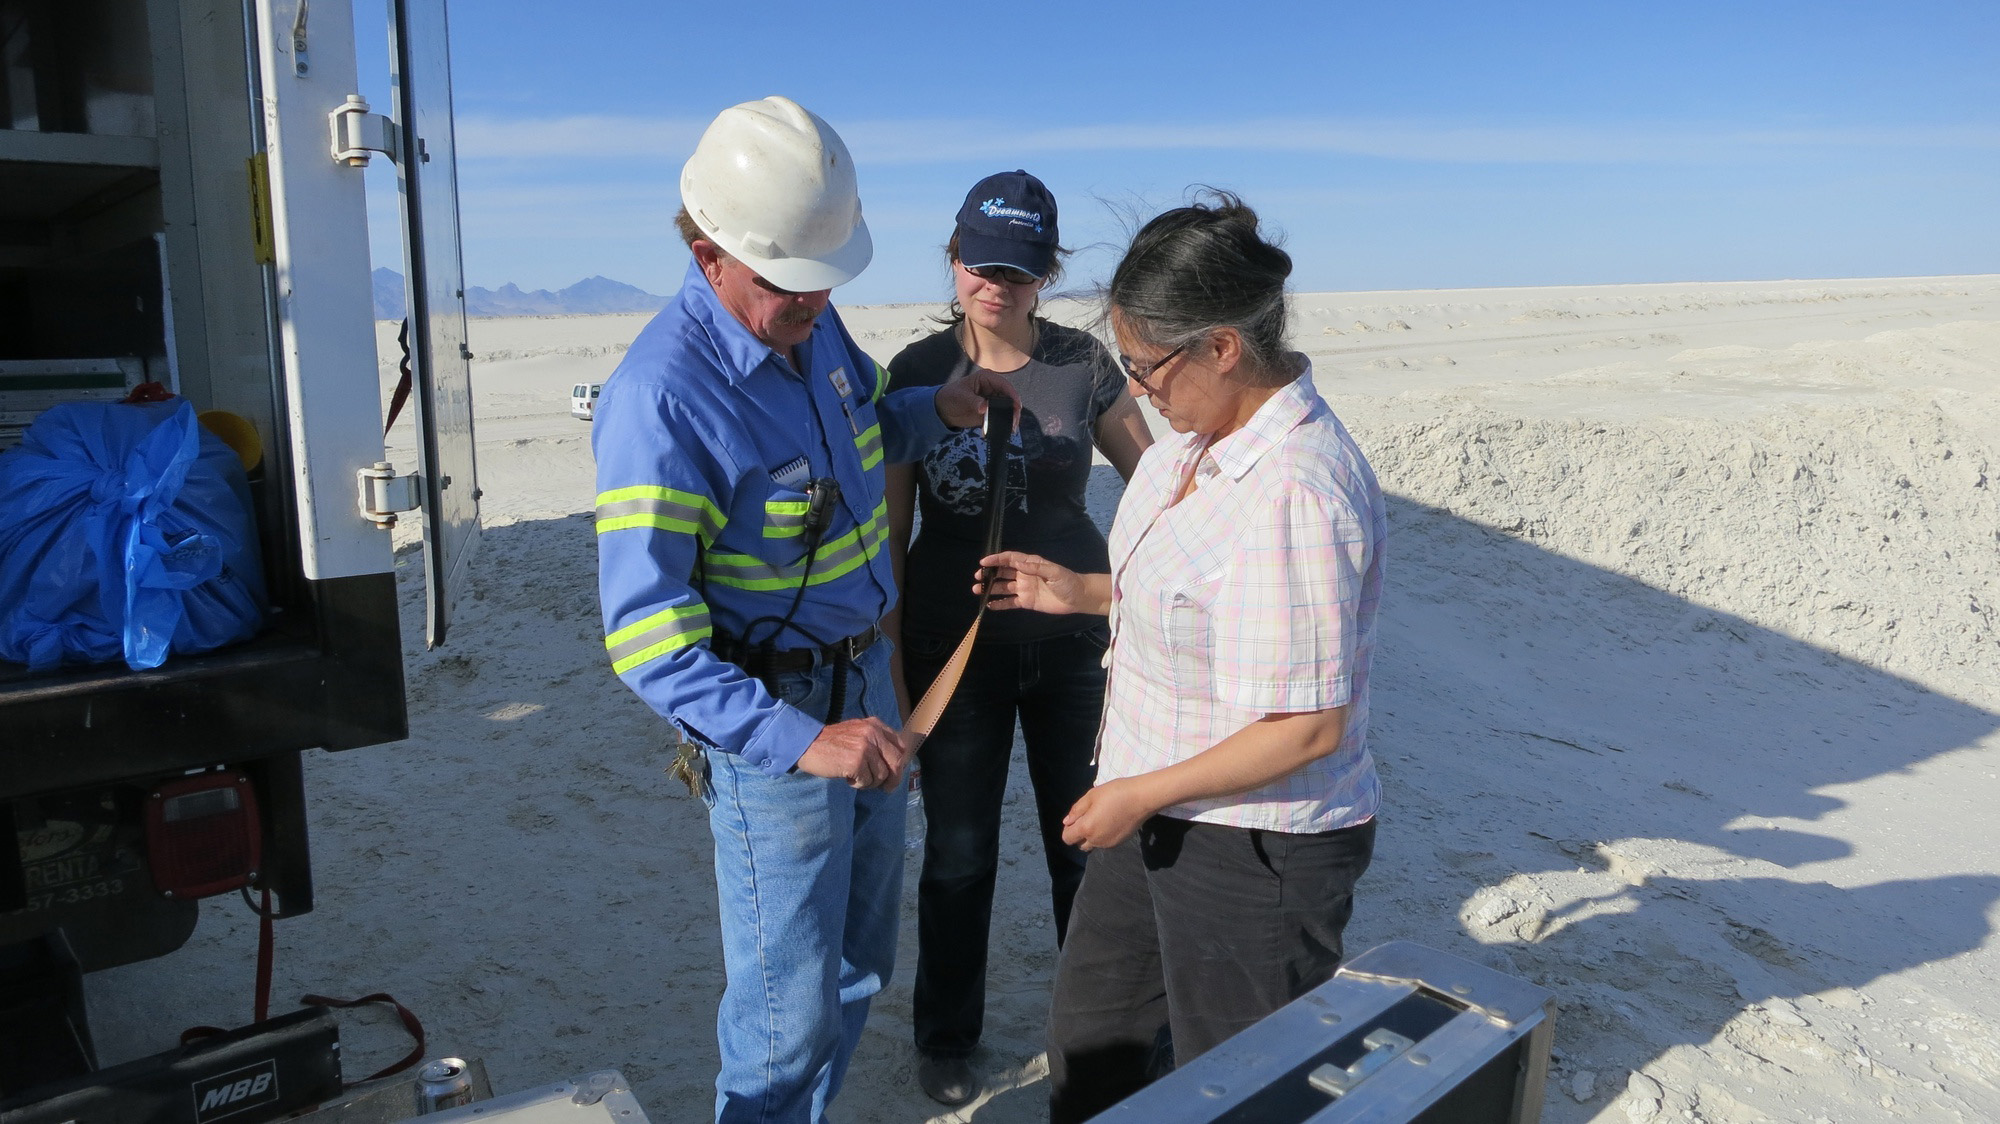 Tacita Dean on location for <em>JG</em> at Intrepid Potash, Wendover, Utah, with Ponds Supervisor, Russ Draper, and his daughter, Jessica (May 2012). Photo: Richard Torchia.